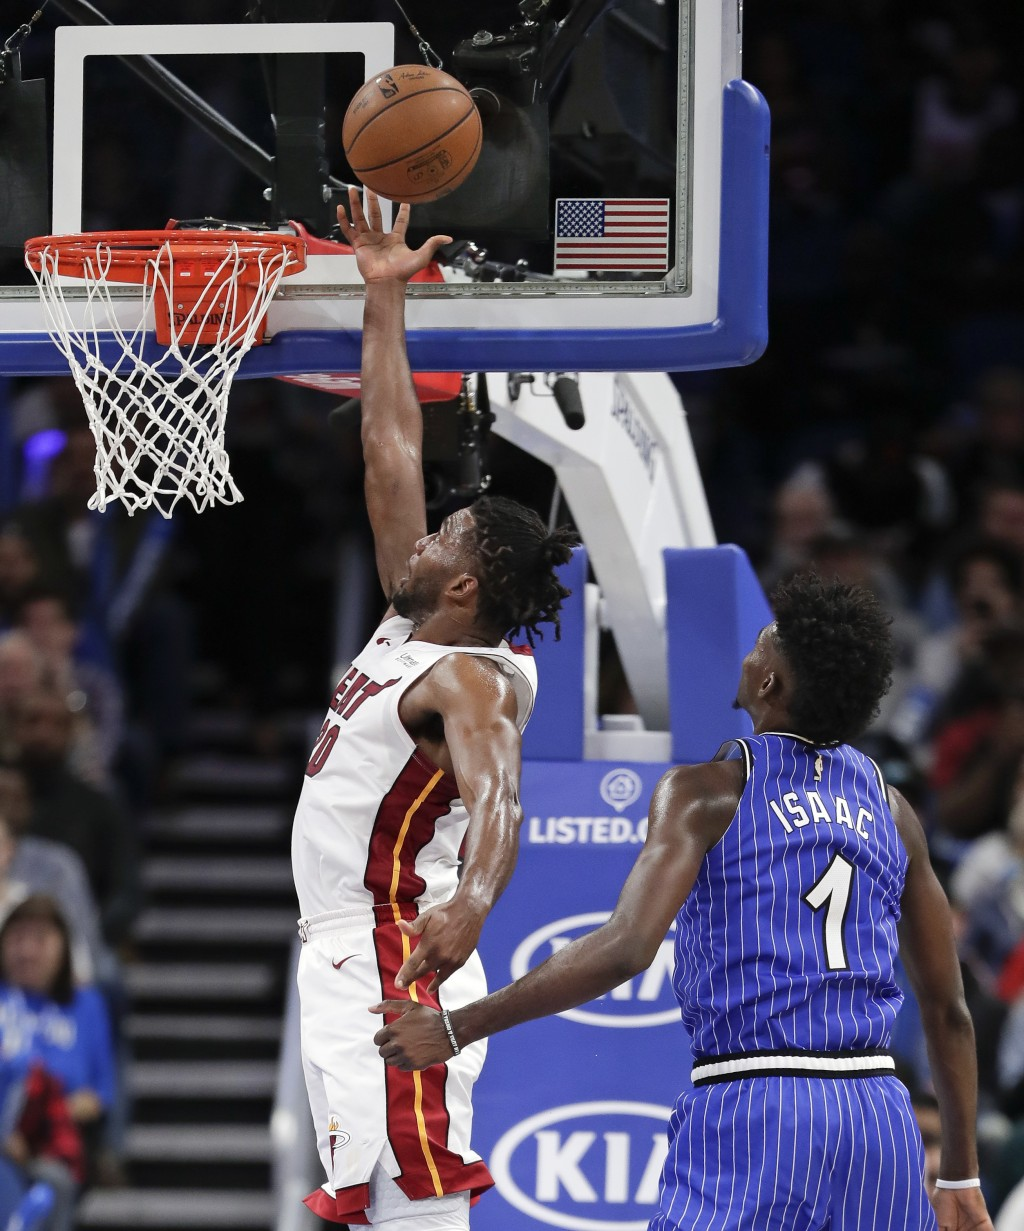 Miami Heat's Justise Winslow, left, goes past Orlando Magic's Jonathan Isaac (1) for a basket during the second half of an NBA basketball game, Sunday